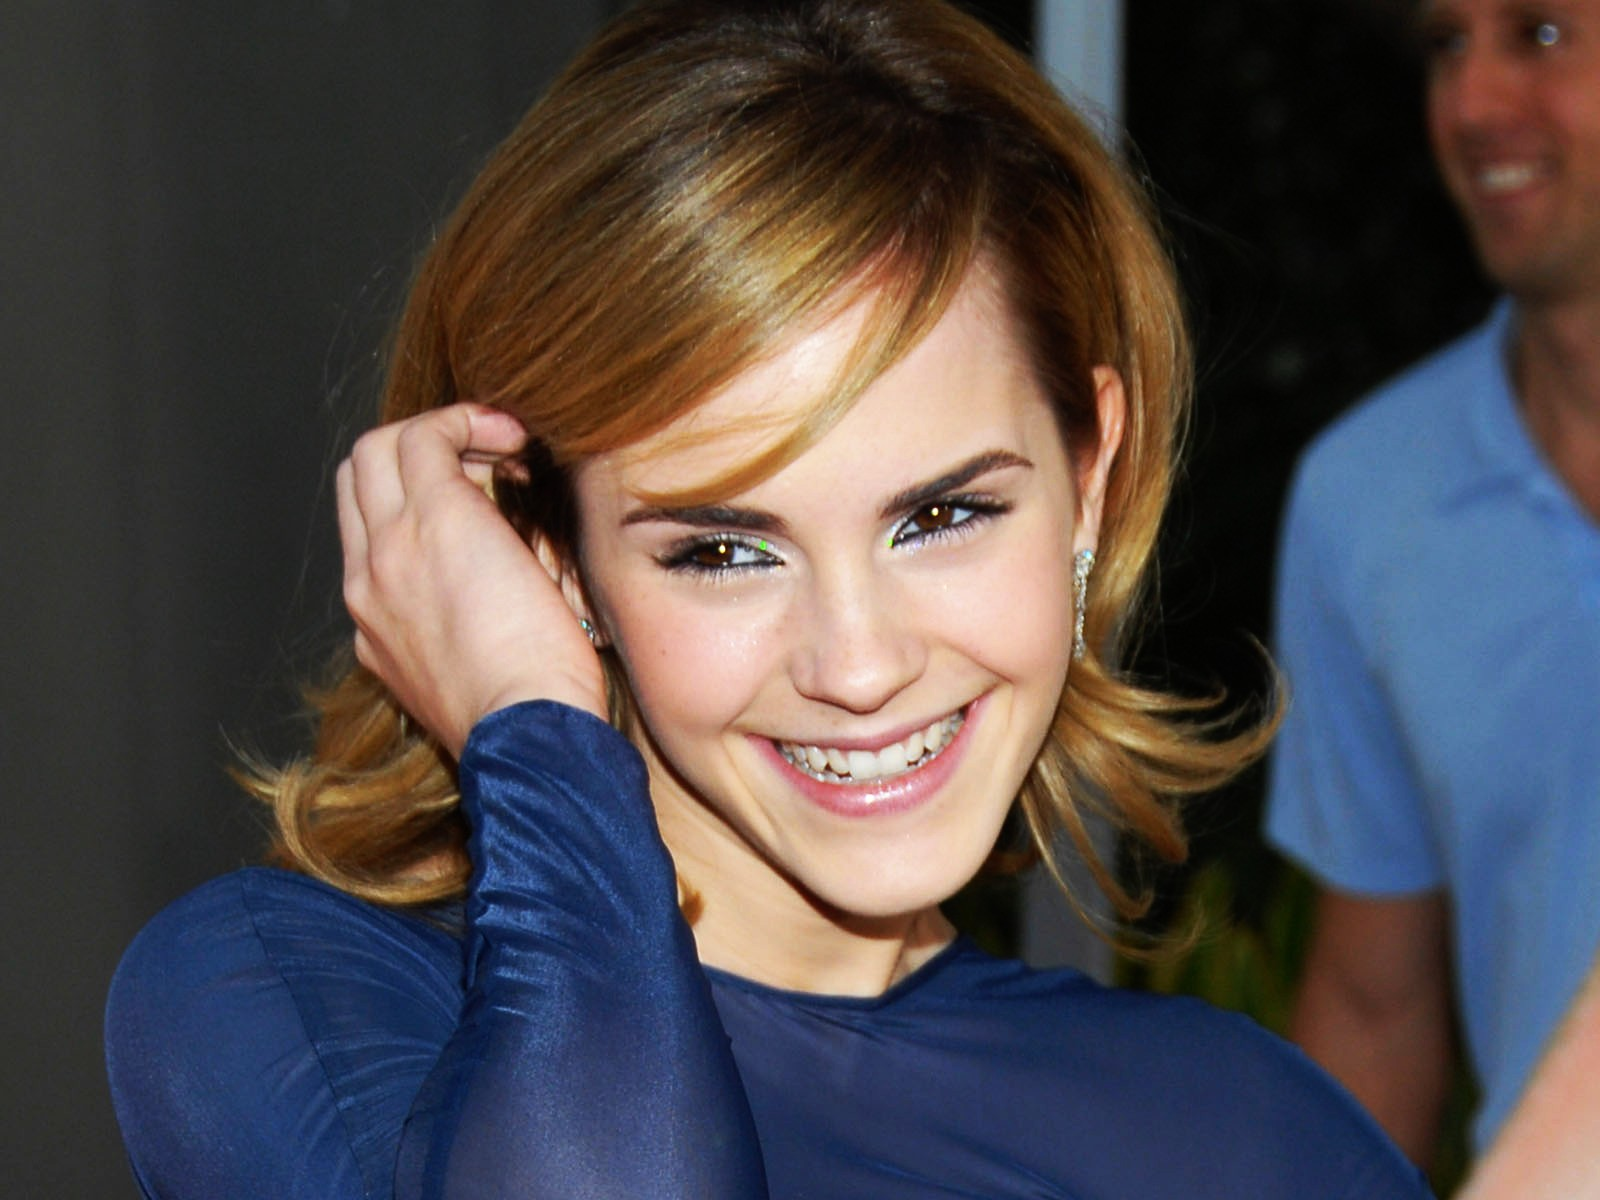 http://4.bp.blogspot.com/_NOdEQKztDvs/TPE-sMn8pDI/AAAAAAAAFiY/XHVcHCn8xYA/s1600/emma_watson_close_up_at_tale_of_despereaux_premiere-normal.jpg